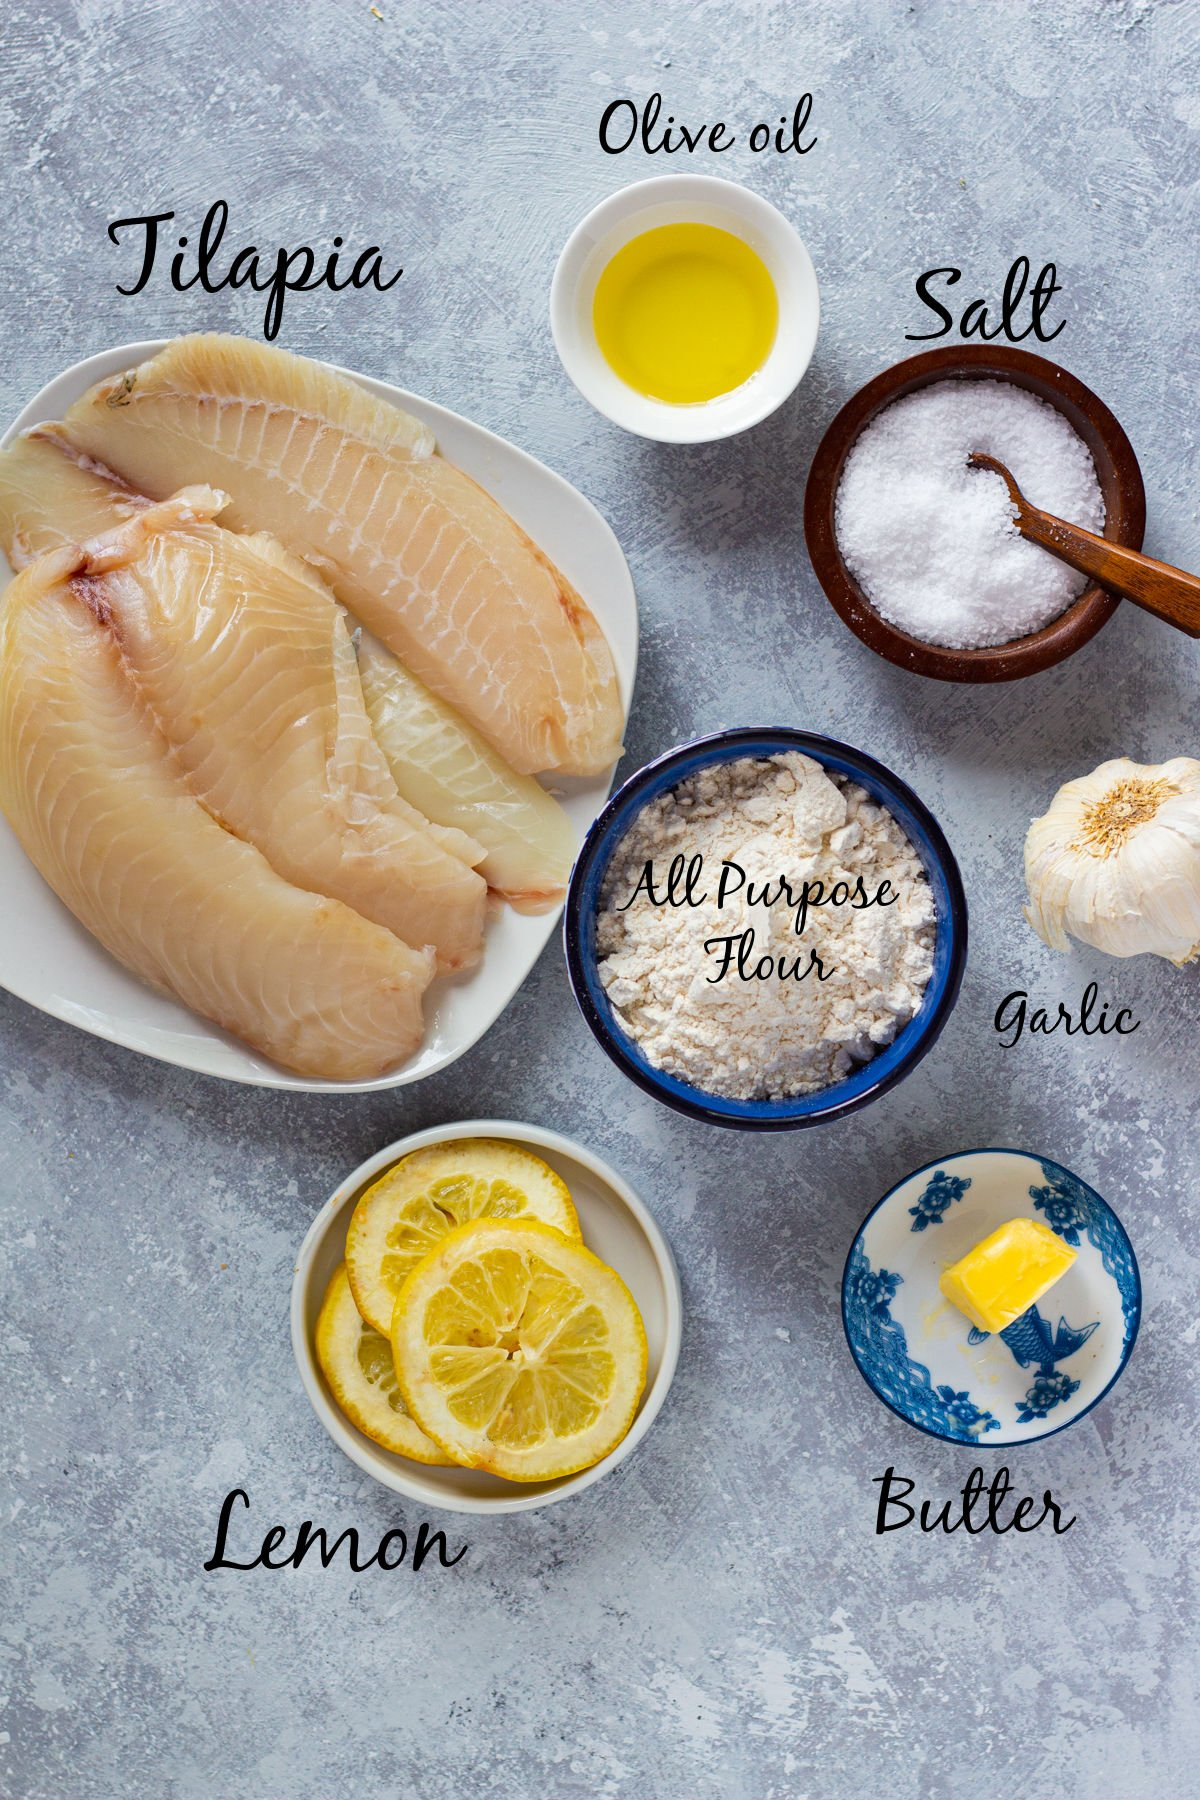 To make this tilapia recipe you need lemon, tilapia, garlic, butter, spices and olive oil.